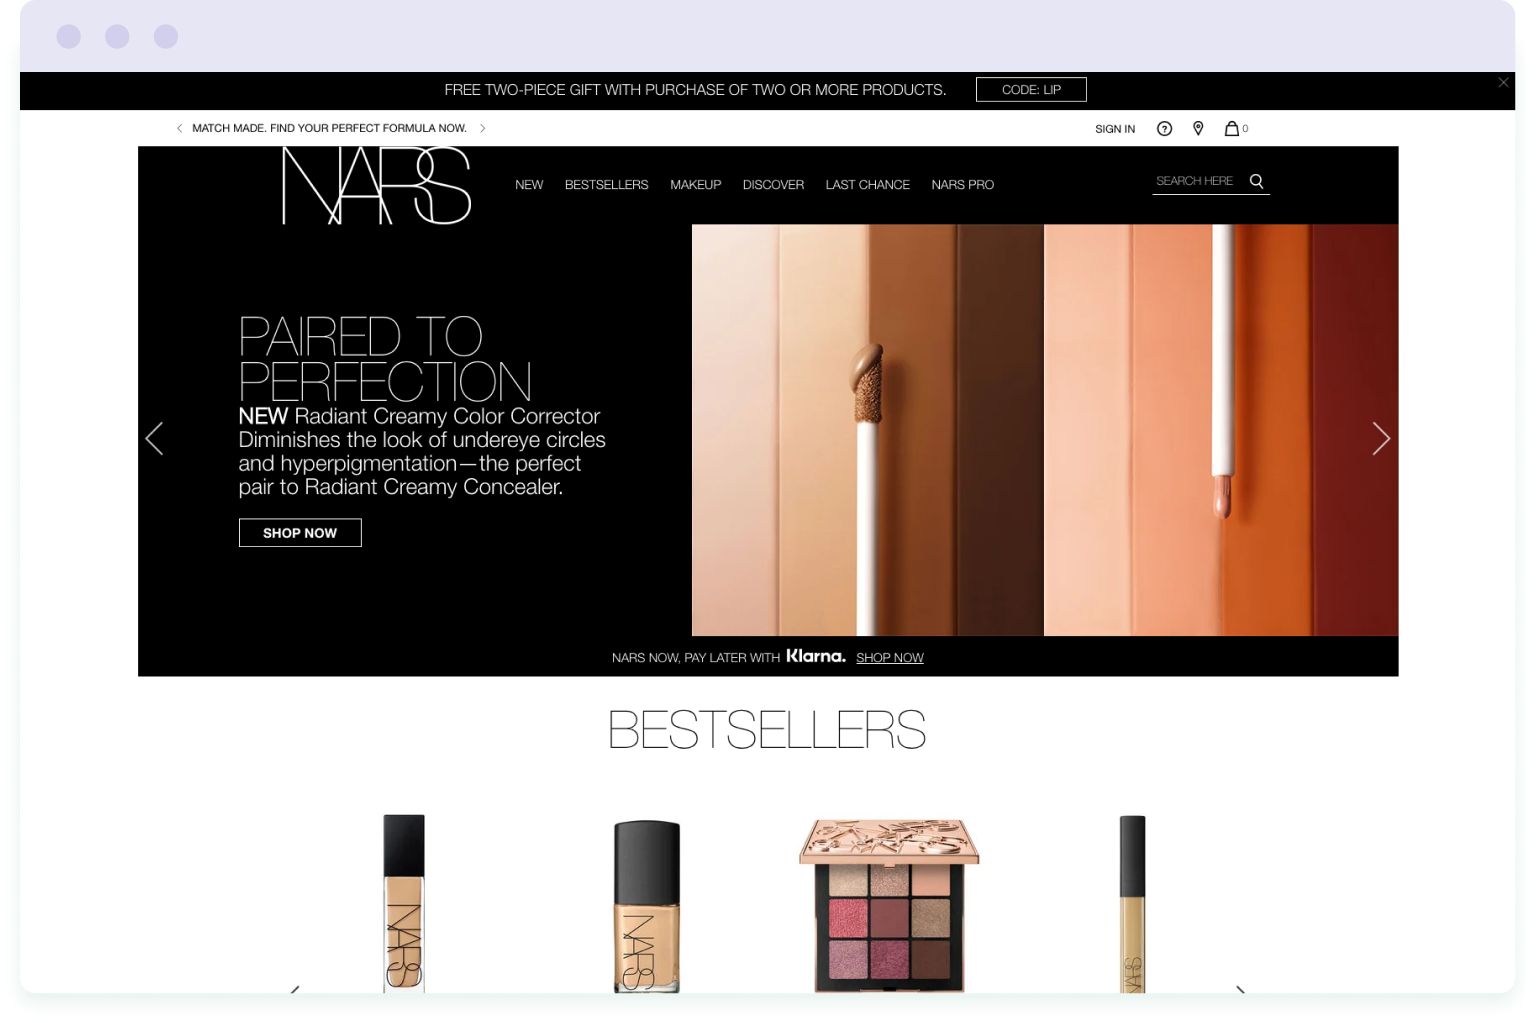 The homepage of the Nars website